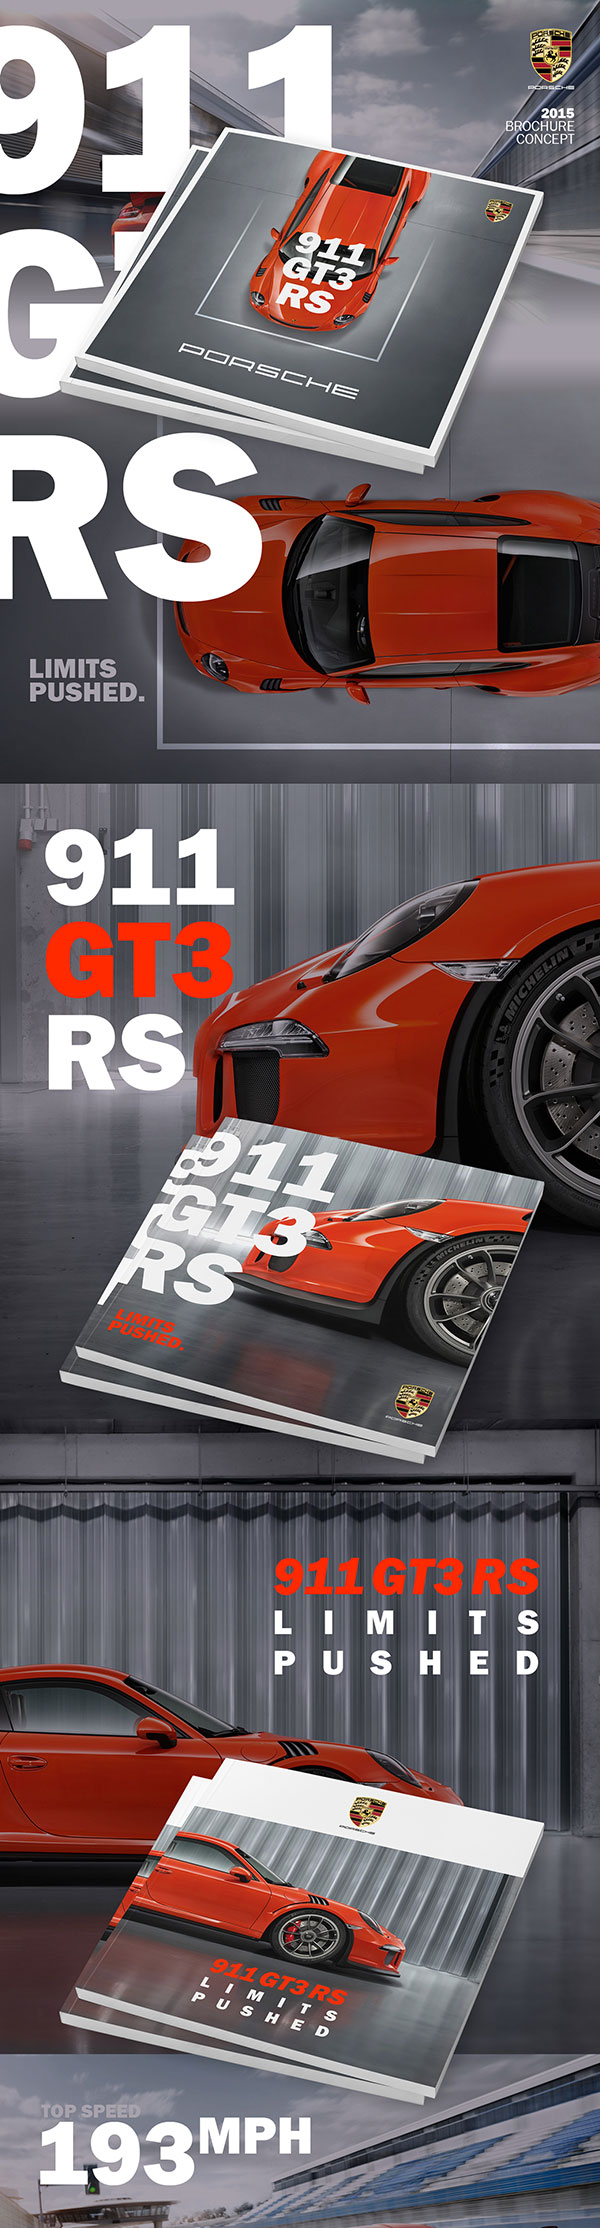 Porsche-911-FT3-RS-Brochure-Design-Concept